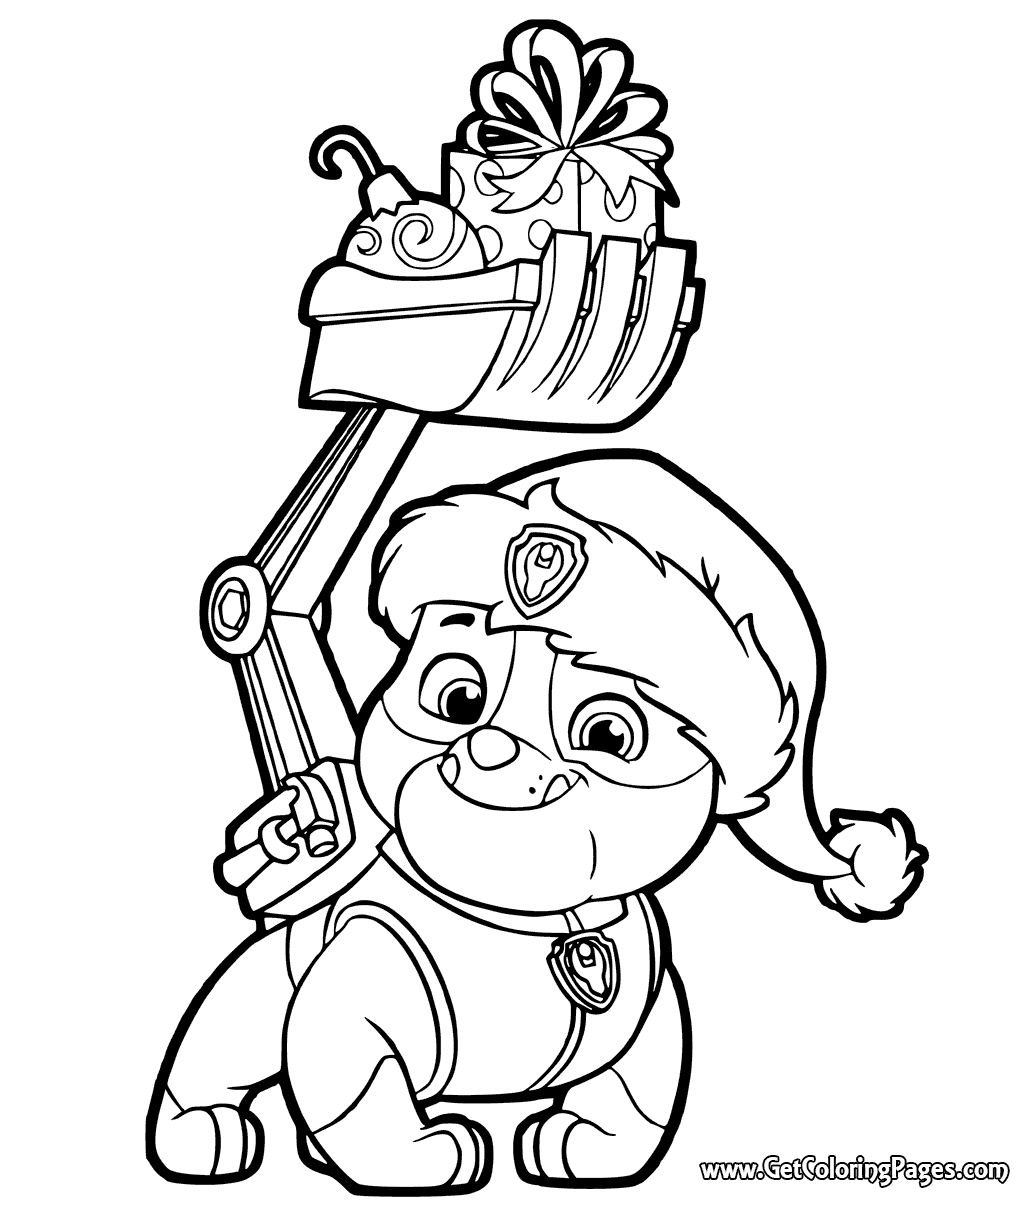 nickelodeon coloring pages - photo#44